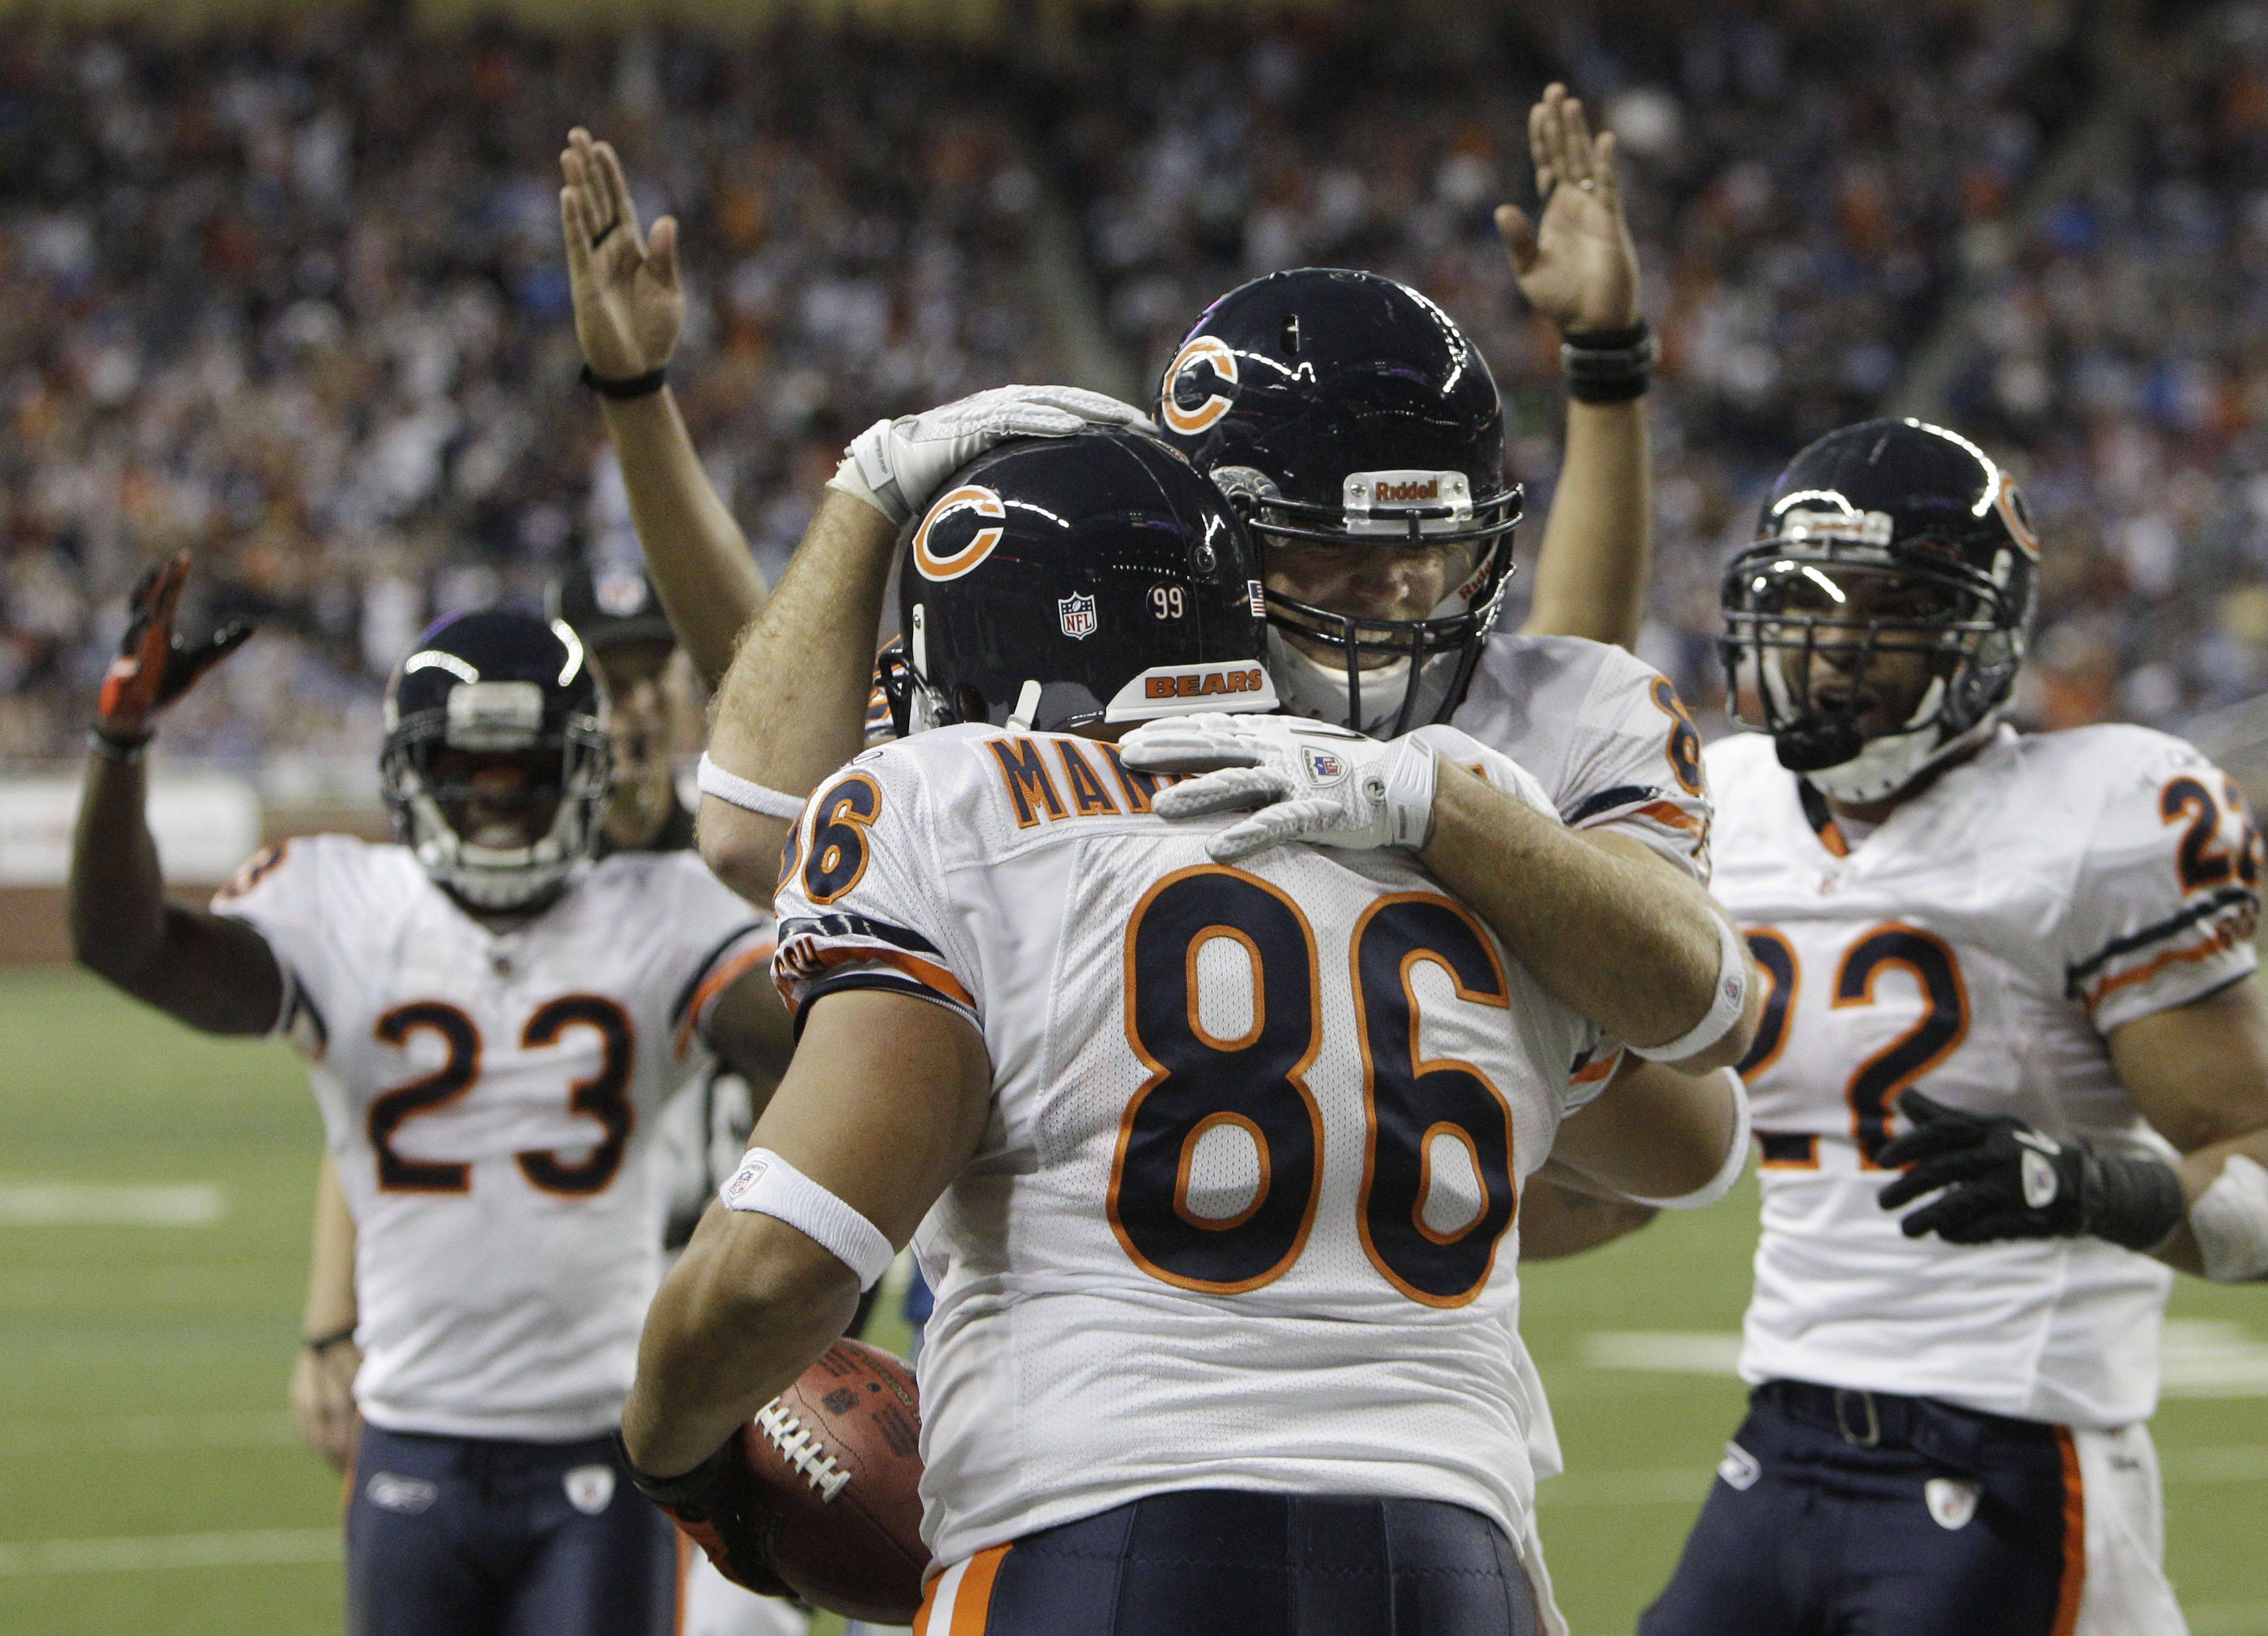 Chicago Bears tight end Brandon Manumaleuna is congratulated by teammates after his touchdown in the fourth quarter.